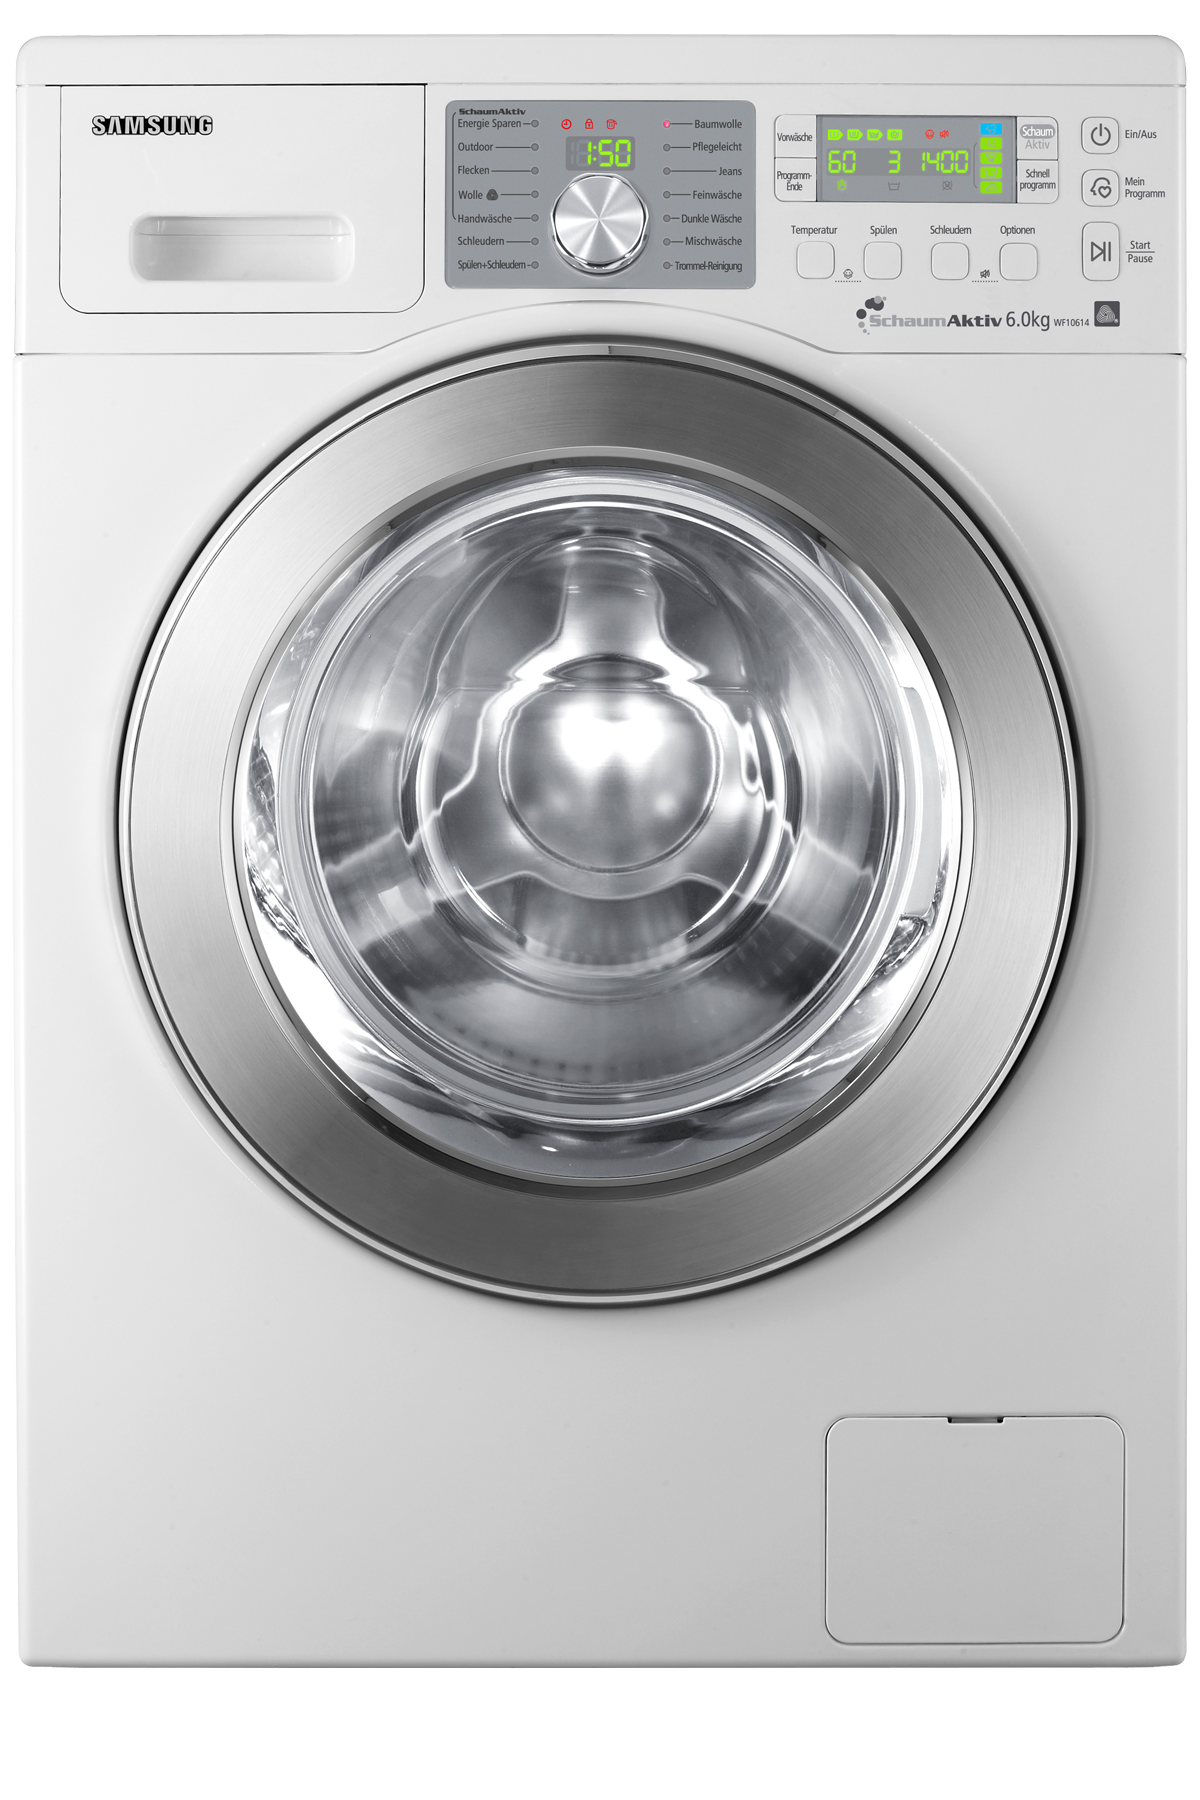 Aegis3 Washer with Eco Bubble, 6 kg, White